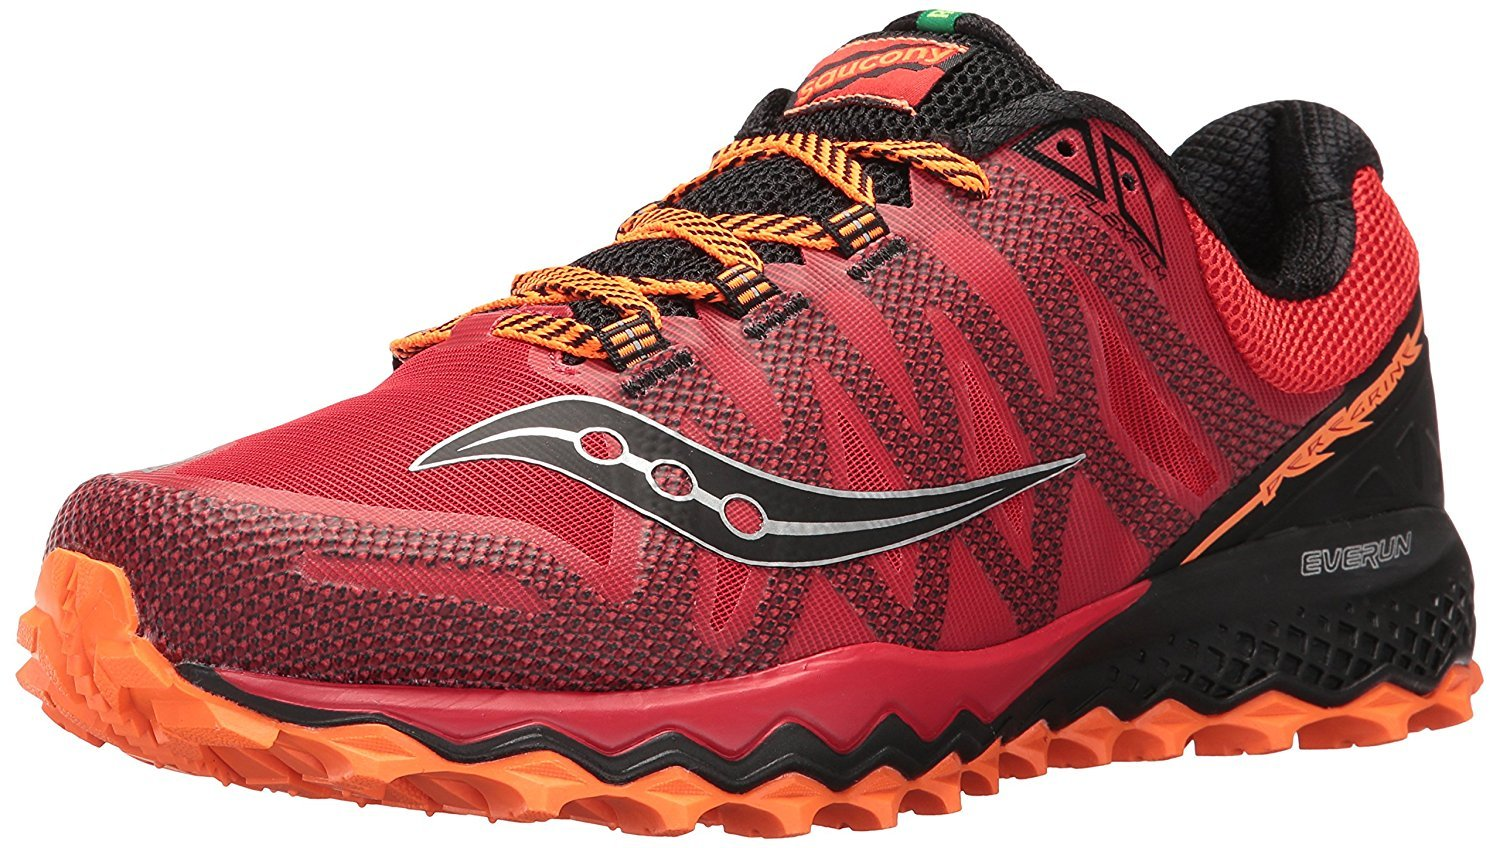 Saucony Men's Peregrine 7 Trail Runner, Red Orange Blue, 10.5 M US by Saucony